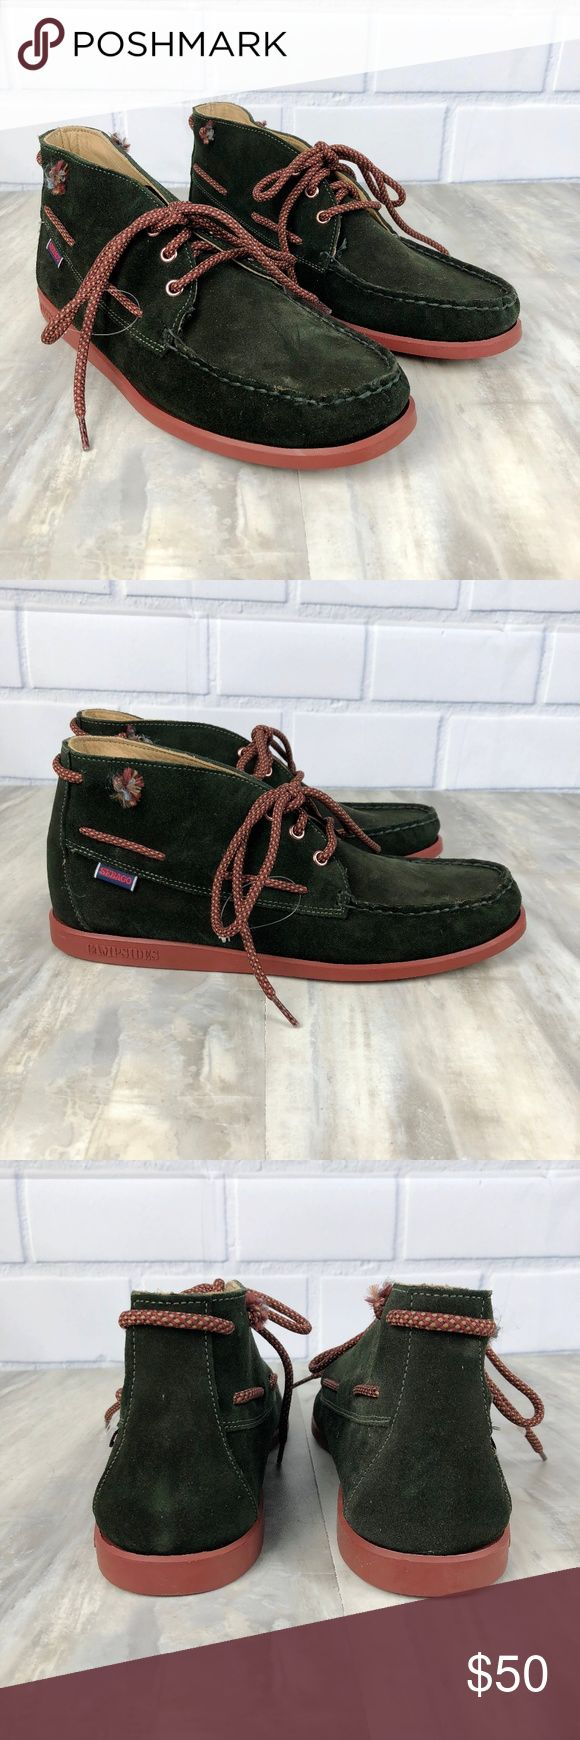 Sebago Campsides 360 Suede Mid Boot Mens' Size 9 New without box Men's Sebago Campsides 360 Mid Boot Retail $140 Size 9 M Dark Green Suede Stock #B694053 Material Repello Gum Oil Very comfortable casual shoes for men Lace up style Has the look of the popular dock shoe Nonsmoking home No box May have some slight marks from being stored without a box. Never worn. No damage. See photos. Sebago Shoes Boots